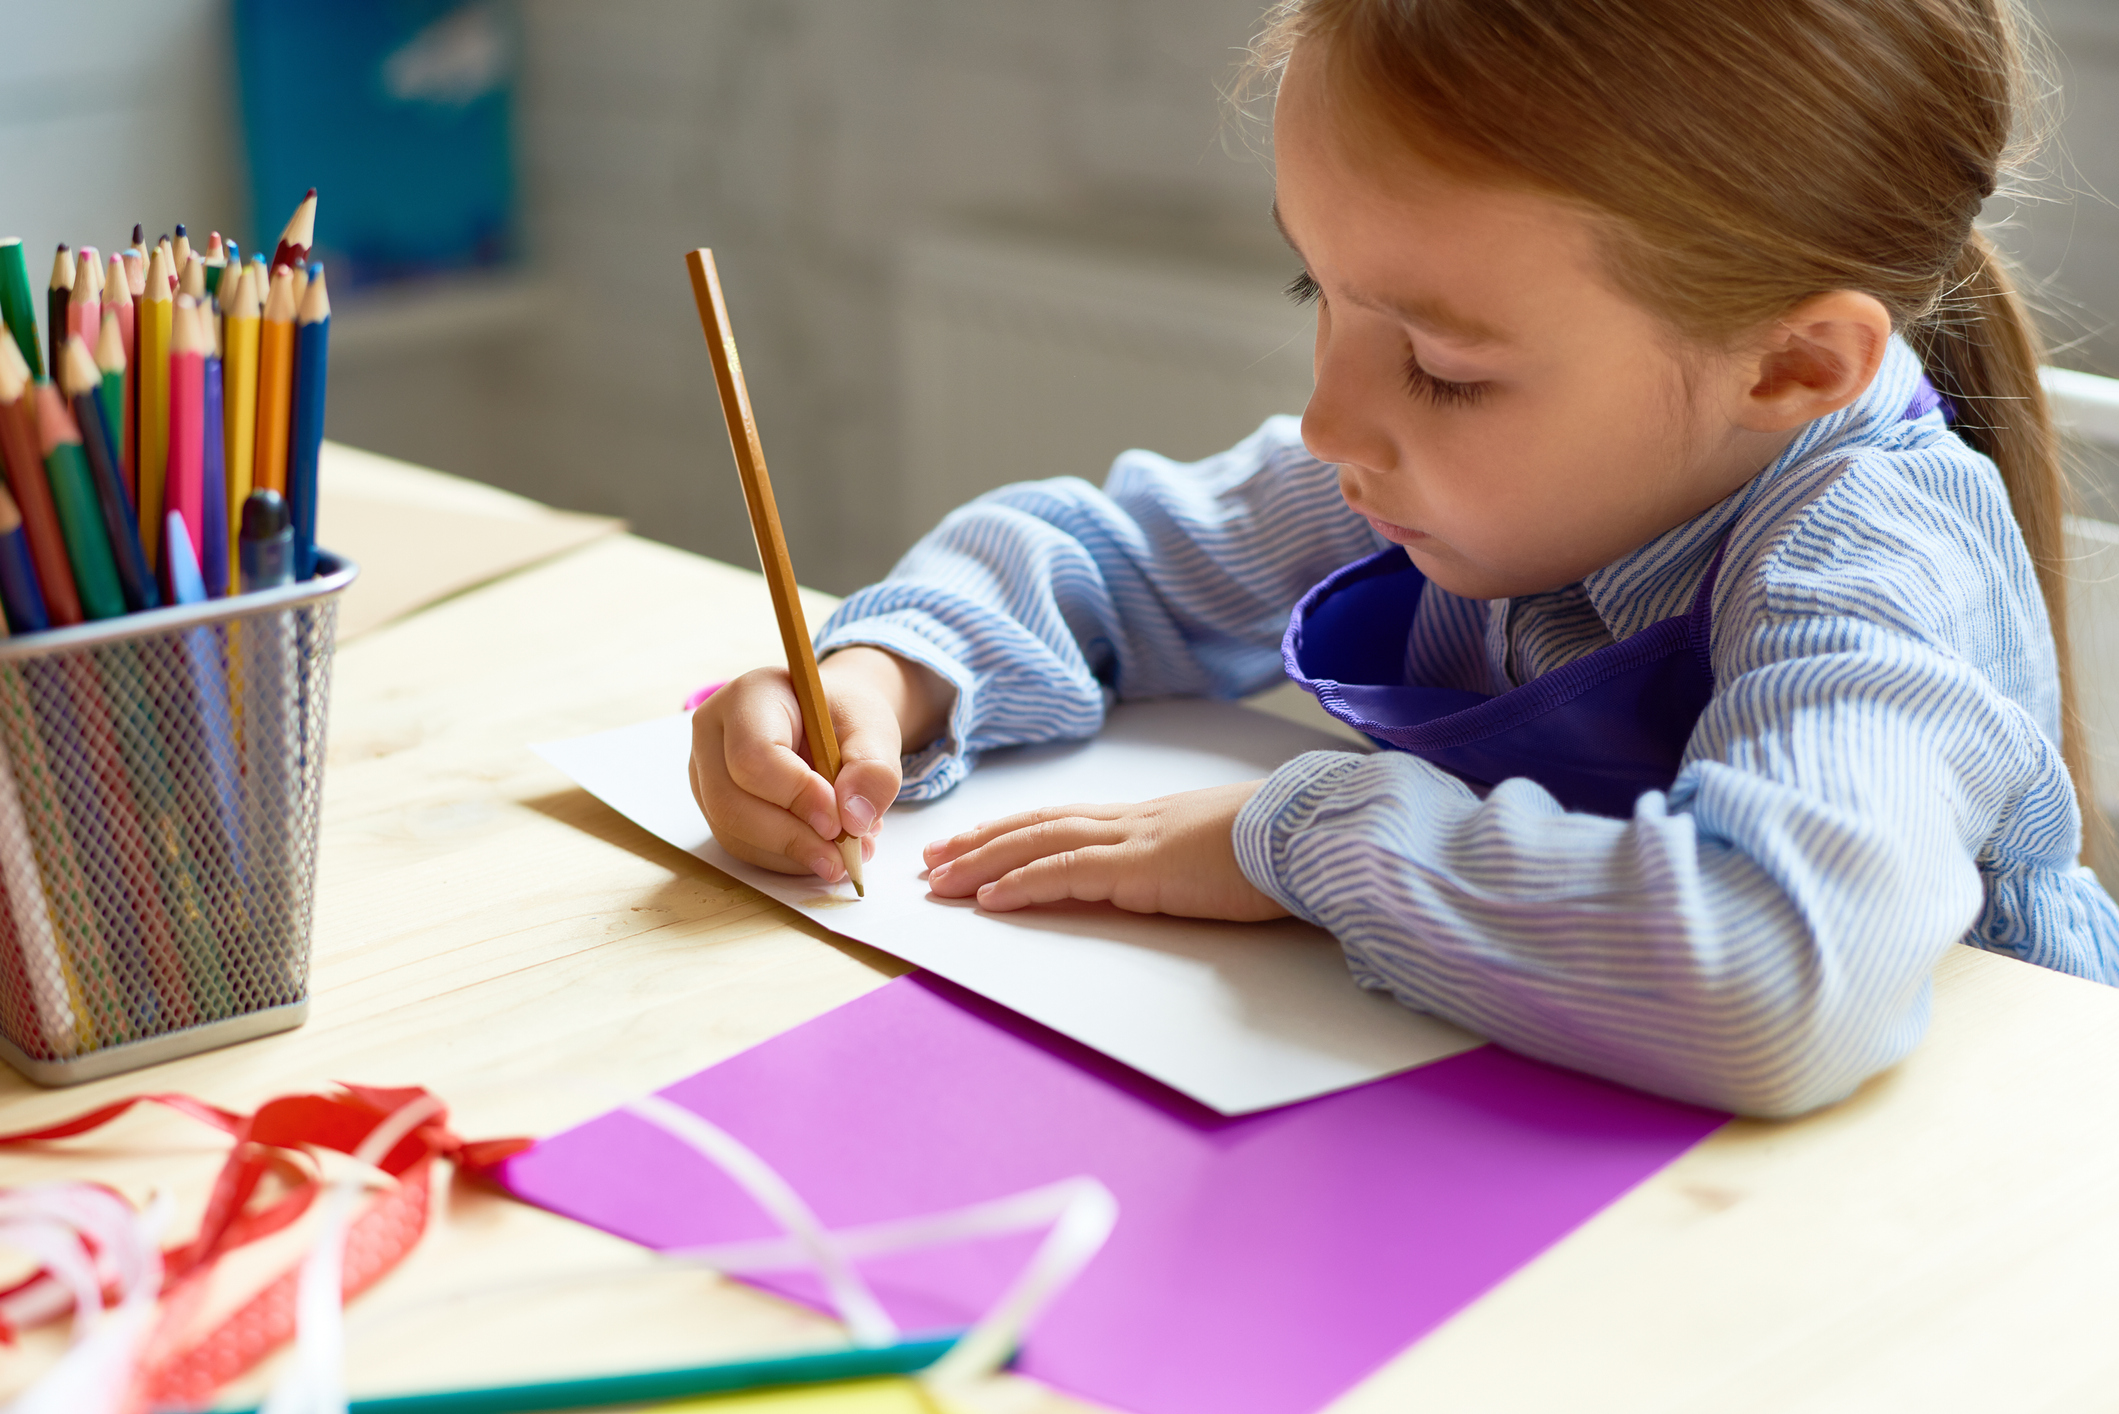 Portrait of cute little girl drawing picture at desk in art class, copy space